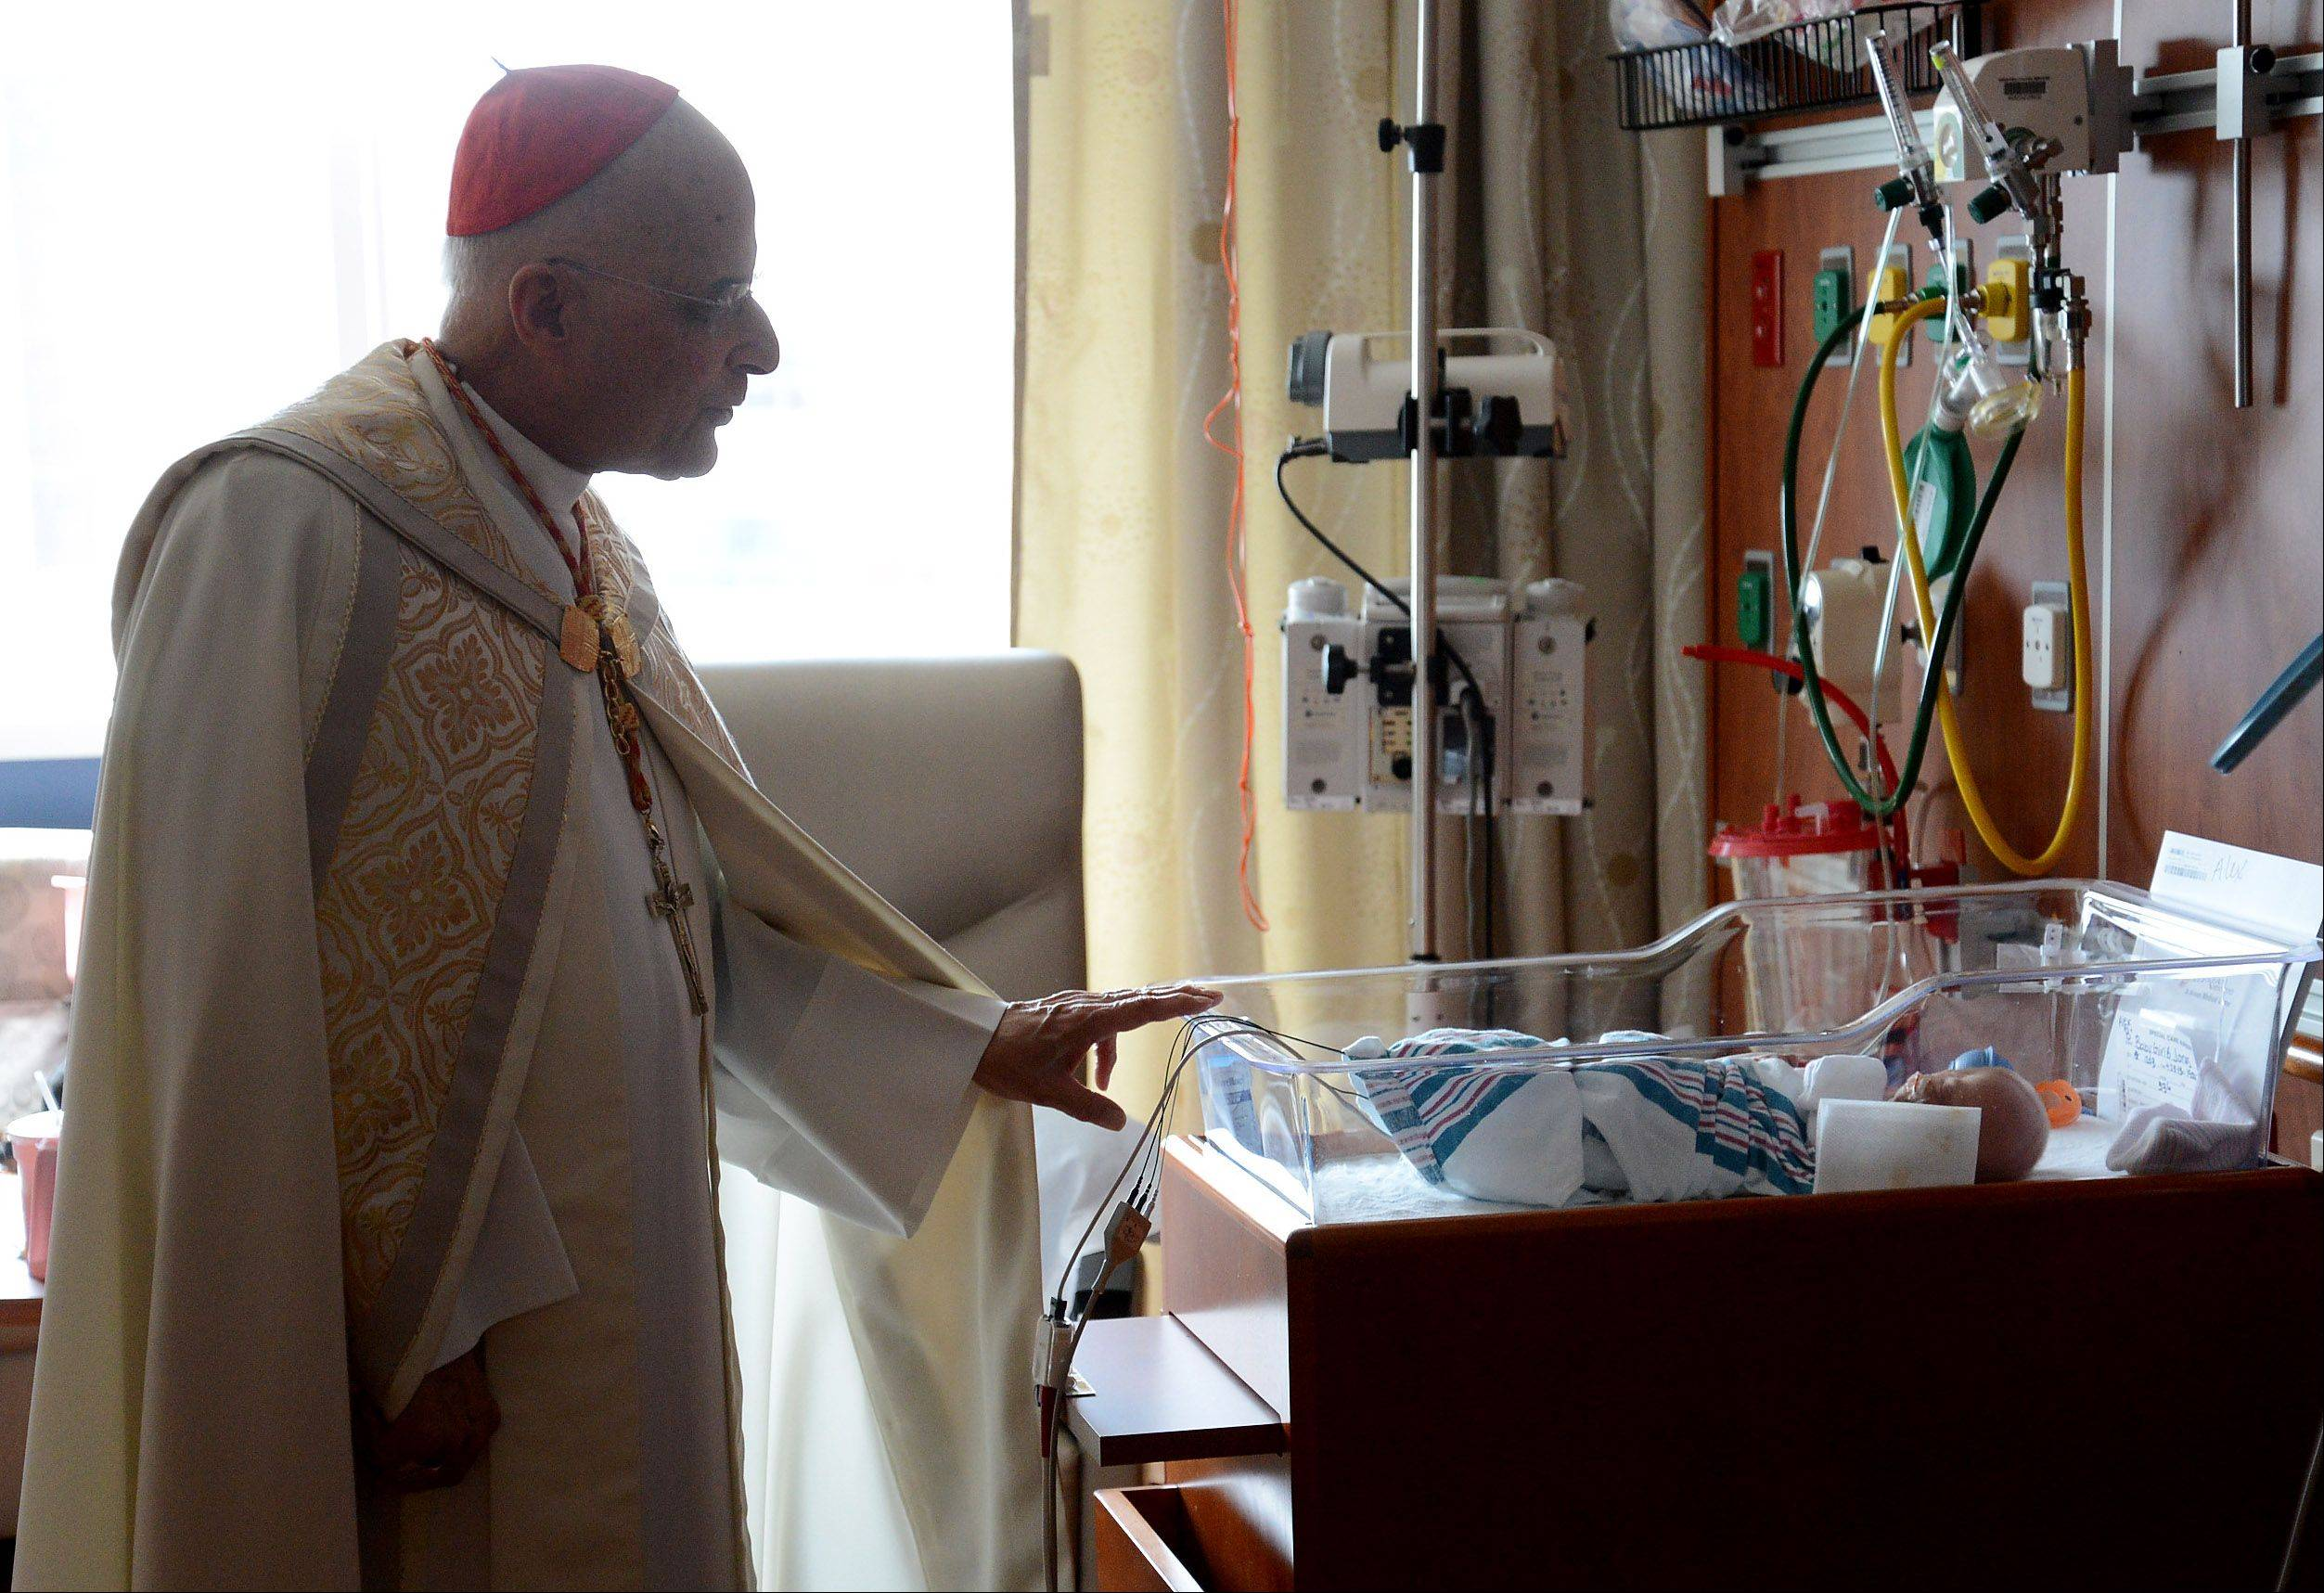 Cardinal Francis George blesses Alexandra Jones, born prematurely. George visited the staff, patients and families of the new Alexian Brothers Women & Children's Hospital in Hoffman Estates on Monday.